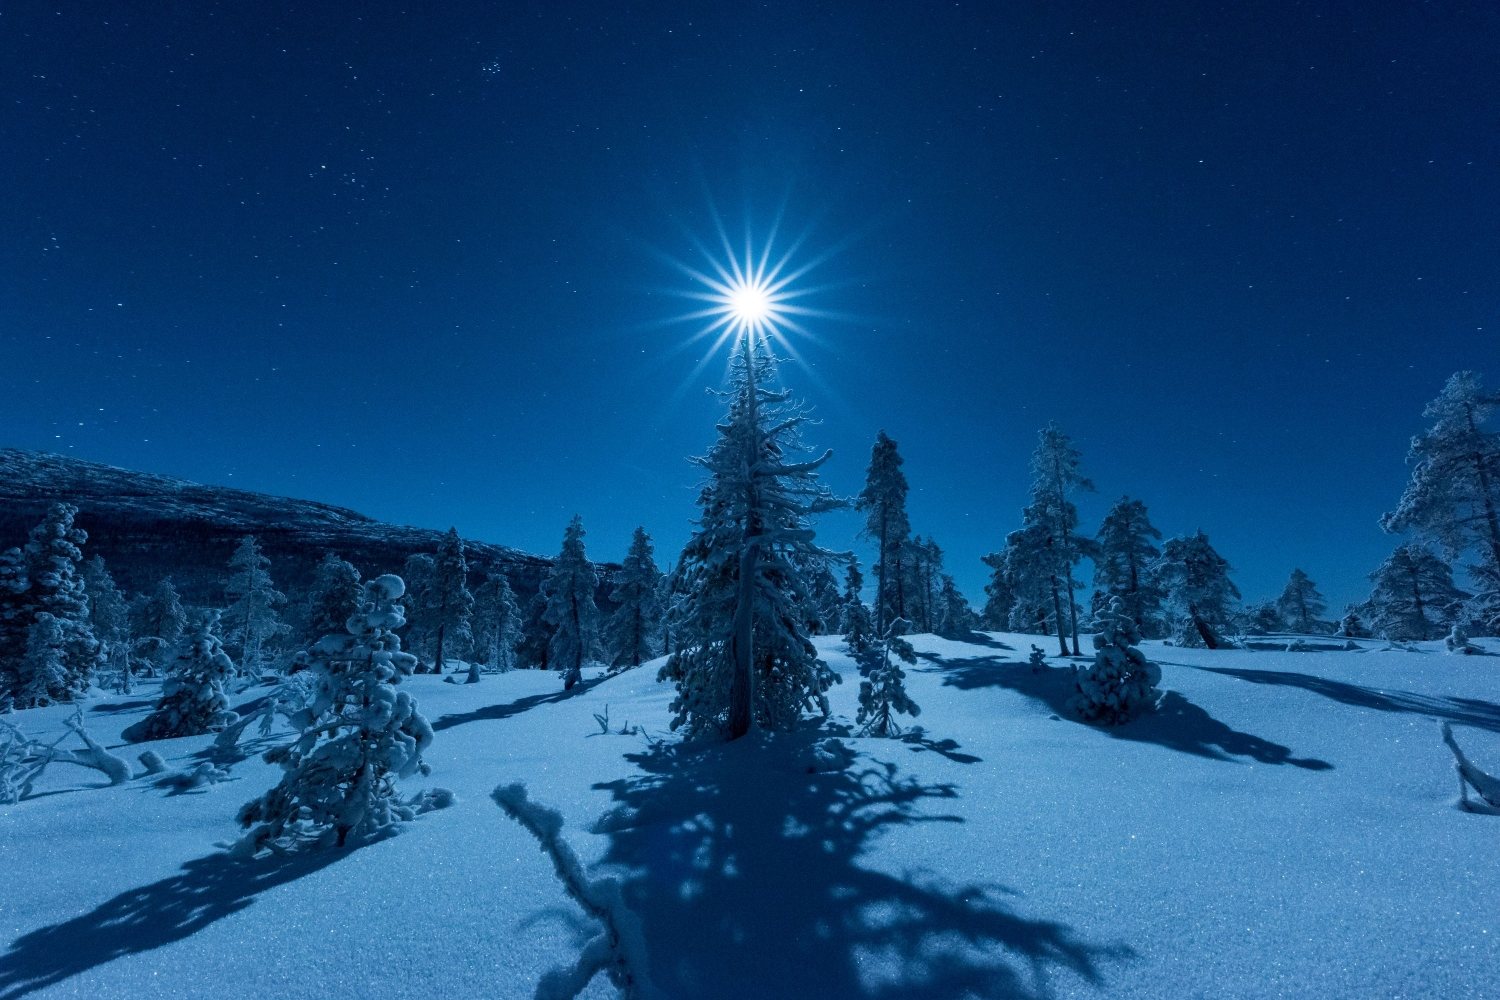 Moonlight above a Christmas tree